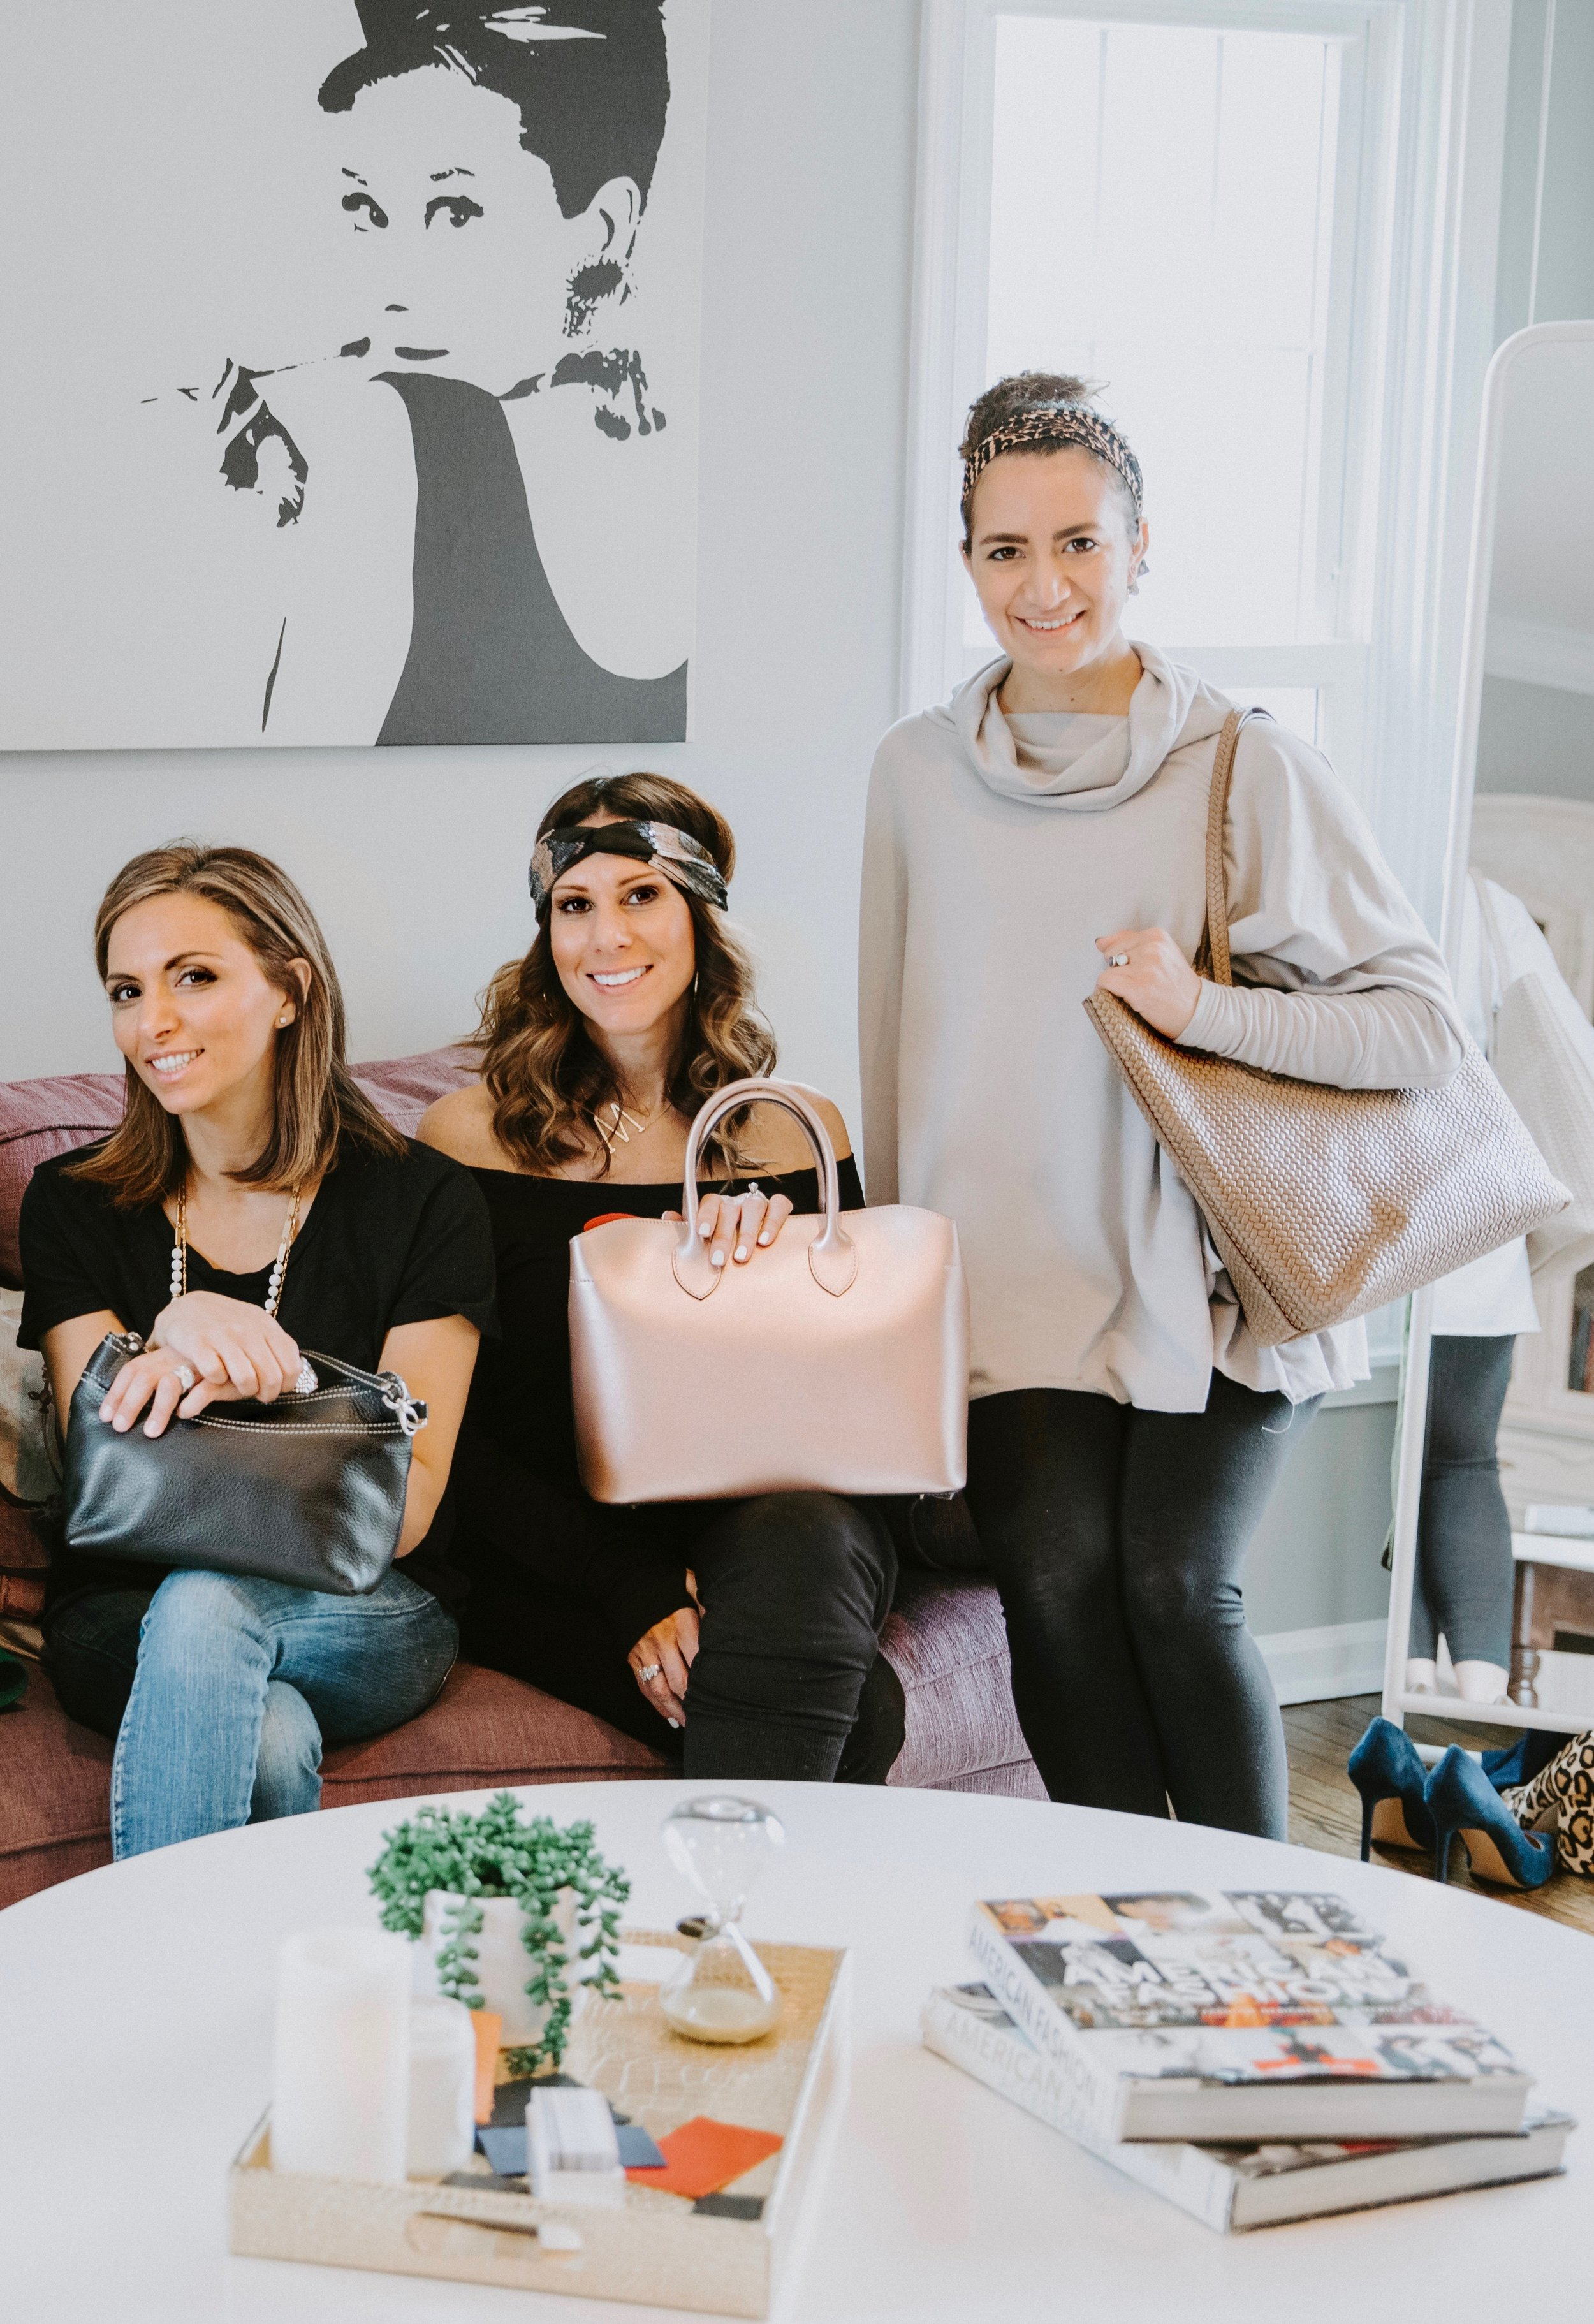 WHO WE ARE - We are a team of ambitious women. We are designers, bloggers, mothers, students, merchandisers. We work together to help each other succeed as a fashion company looking to give the mothers, young professionals, fashion lovers, and the all around multi-tasking ambitious woman a product she can trust.